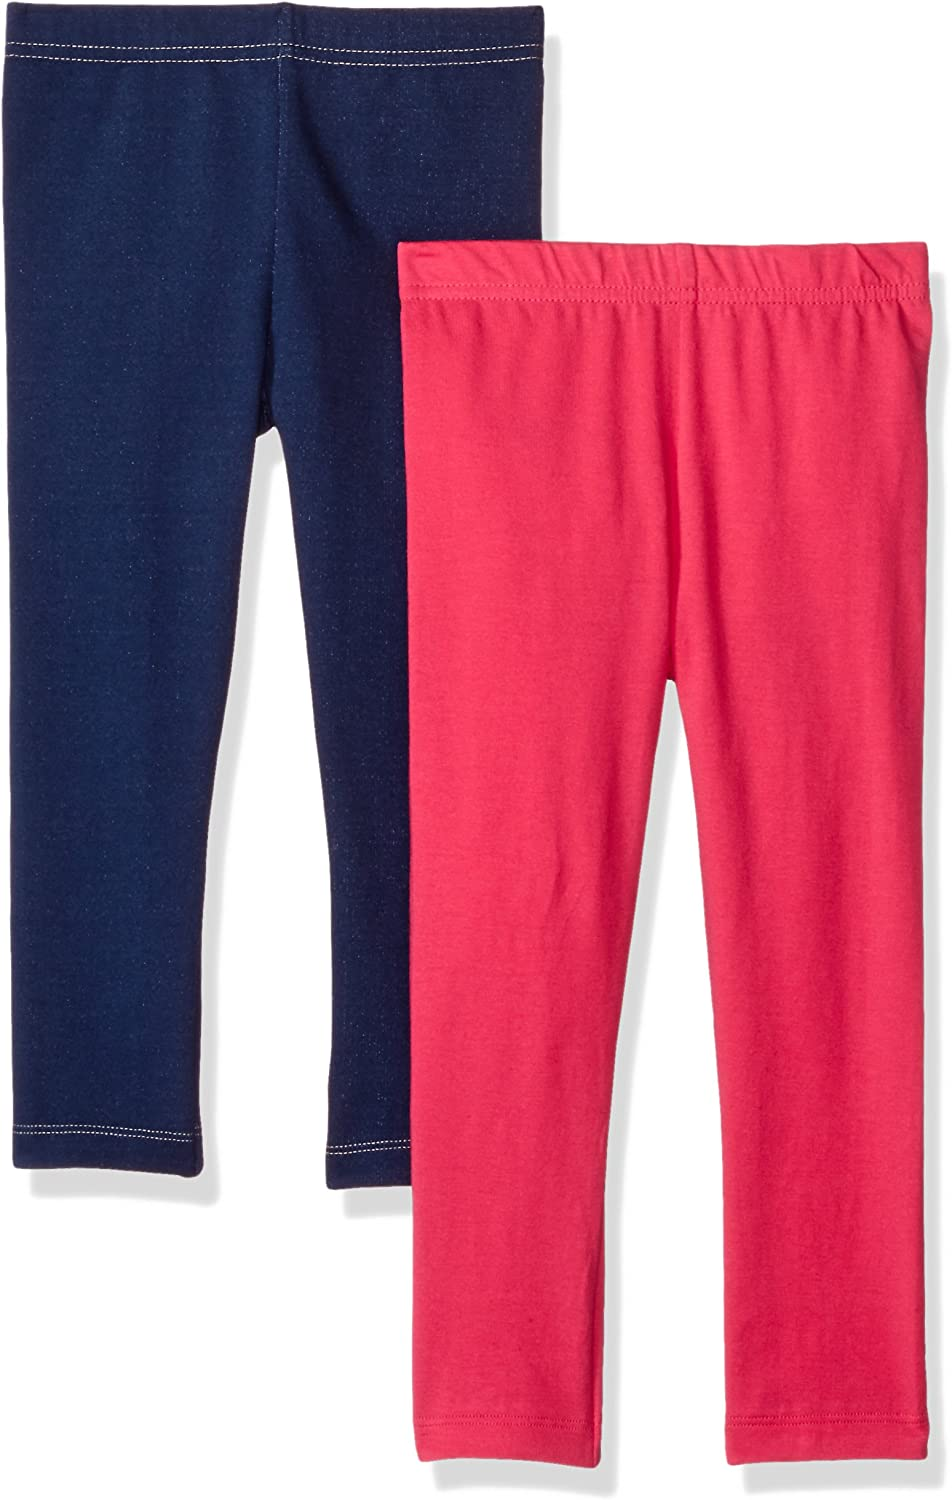 Gerber Limited price Baby Girls' 2021new shipping free shipping 2 Pack Leggings